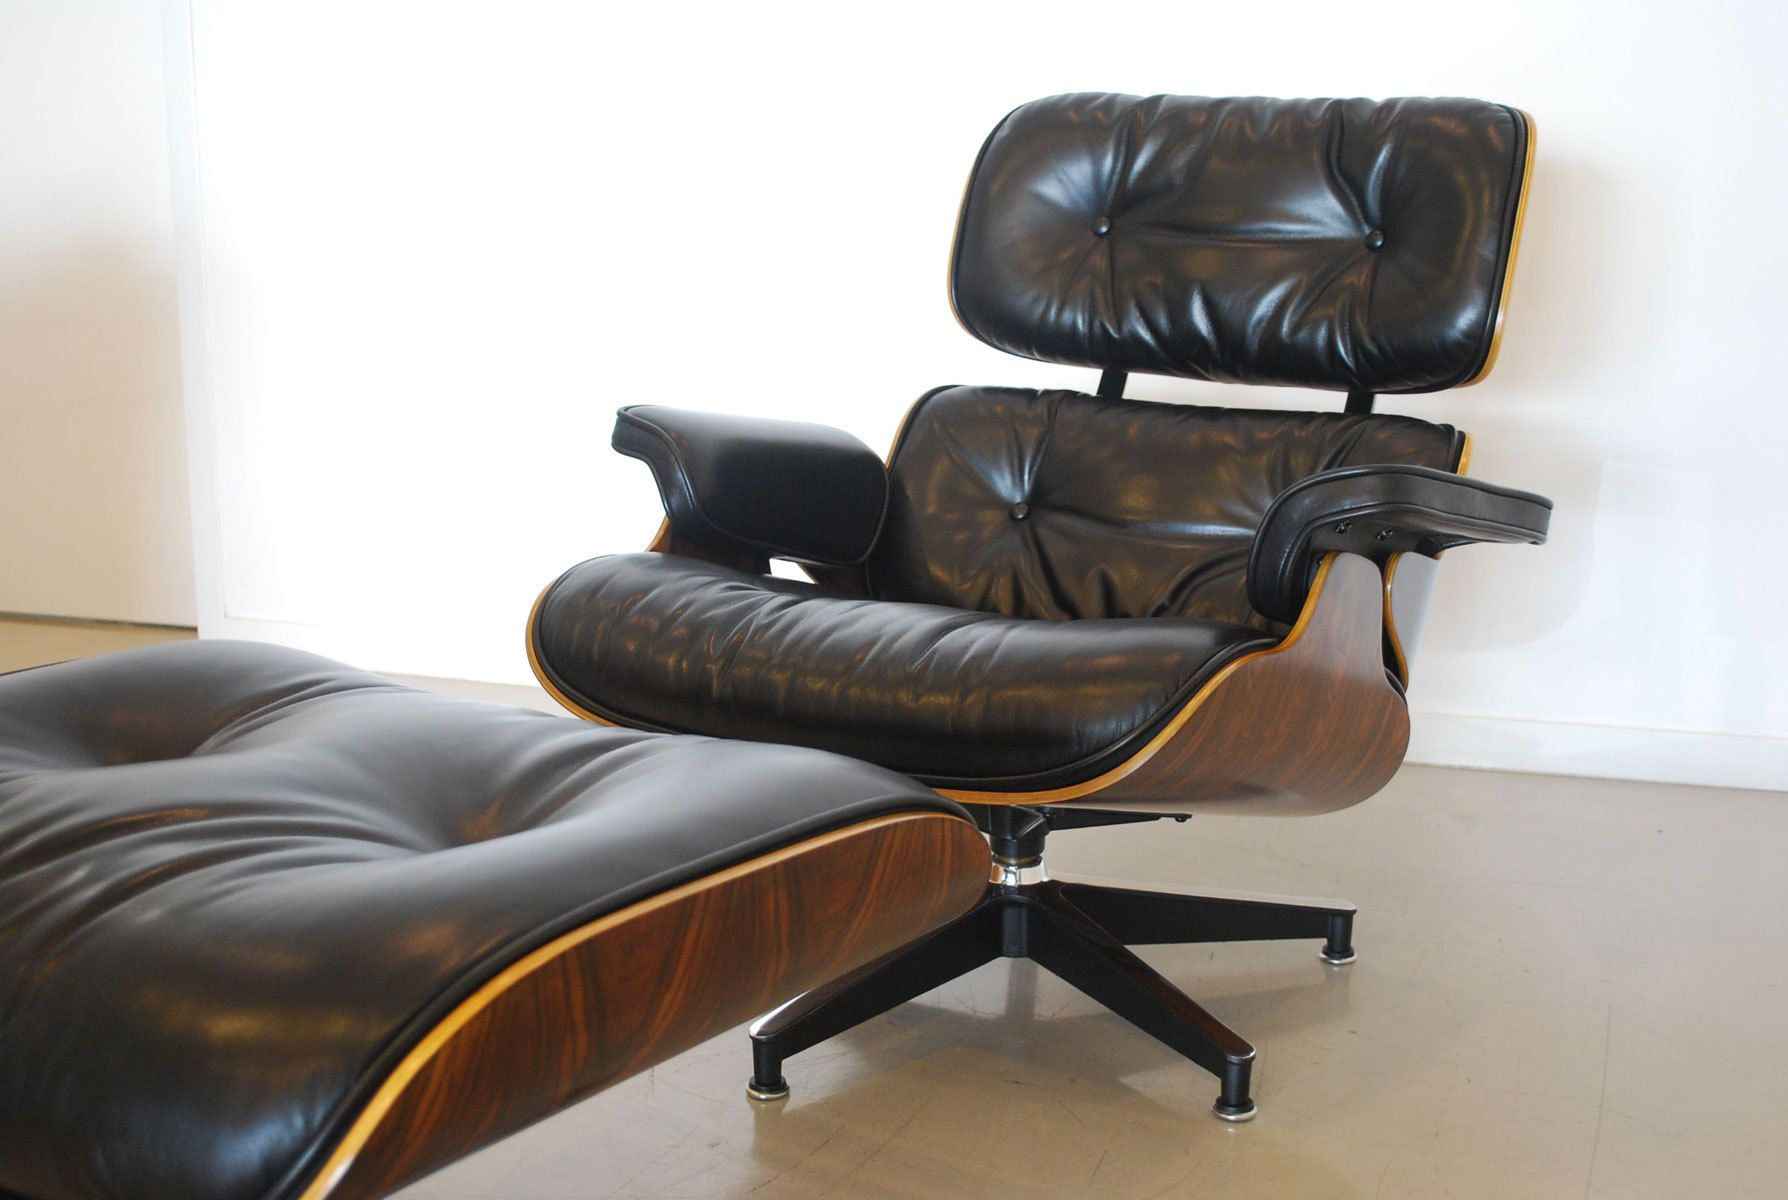 Classic Design Herman Miller Eames Lounge Chair Sessel Lesesessel Stühle Mit Hoher Rückenlehne